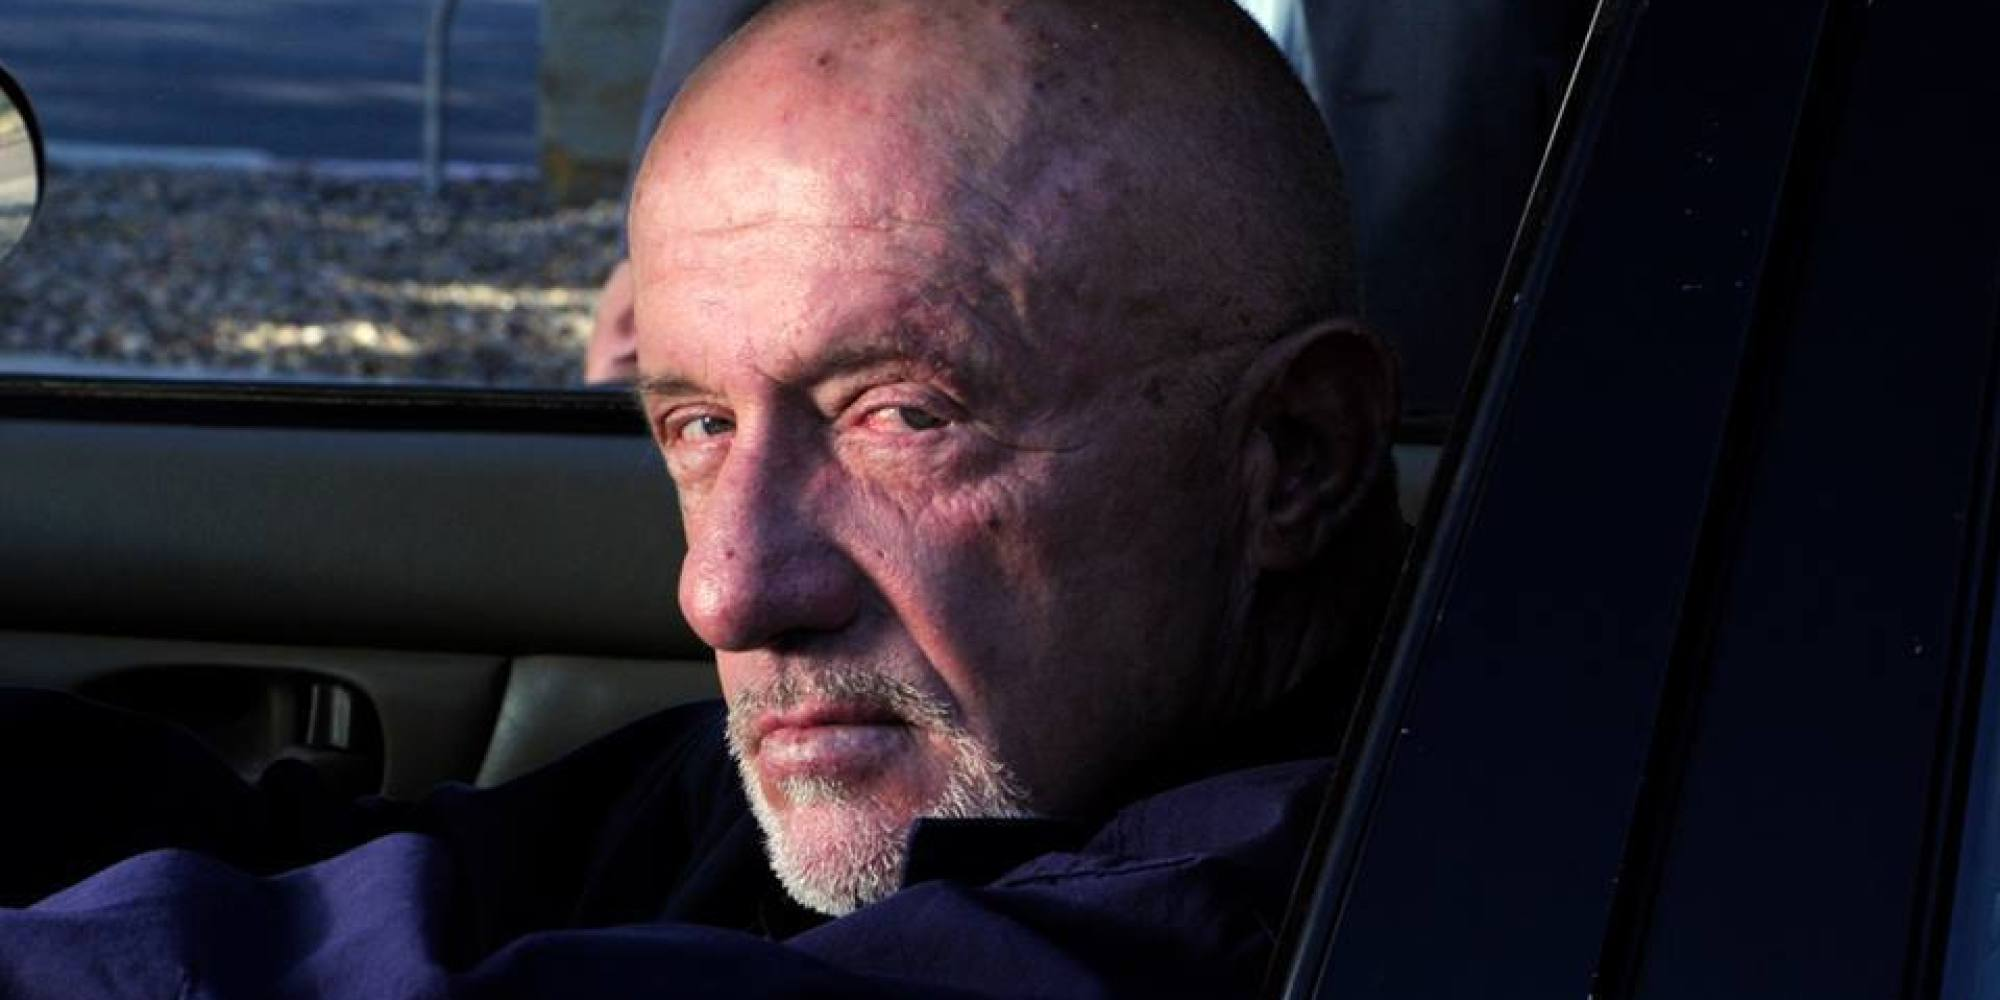 jonathan banks airplanejonathan banks young, jonathan banks beverly hills cop, jonathan banks dexter, jonathan banks height, jonathan banks boxer wiki, jonathan banks john oliver, jonathan banks tv shows, jonathan banks and wife, jonathan banks game of thrones, johnthan banks nfl, jonathan banks dead, jonathan banks death, jonathan banks airplane, johnathon banks boxer, jonathan banks films, jonathan banks died